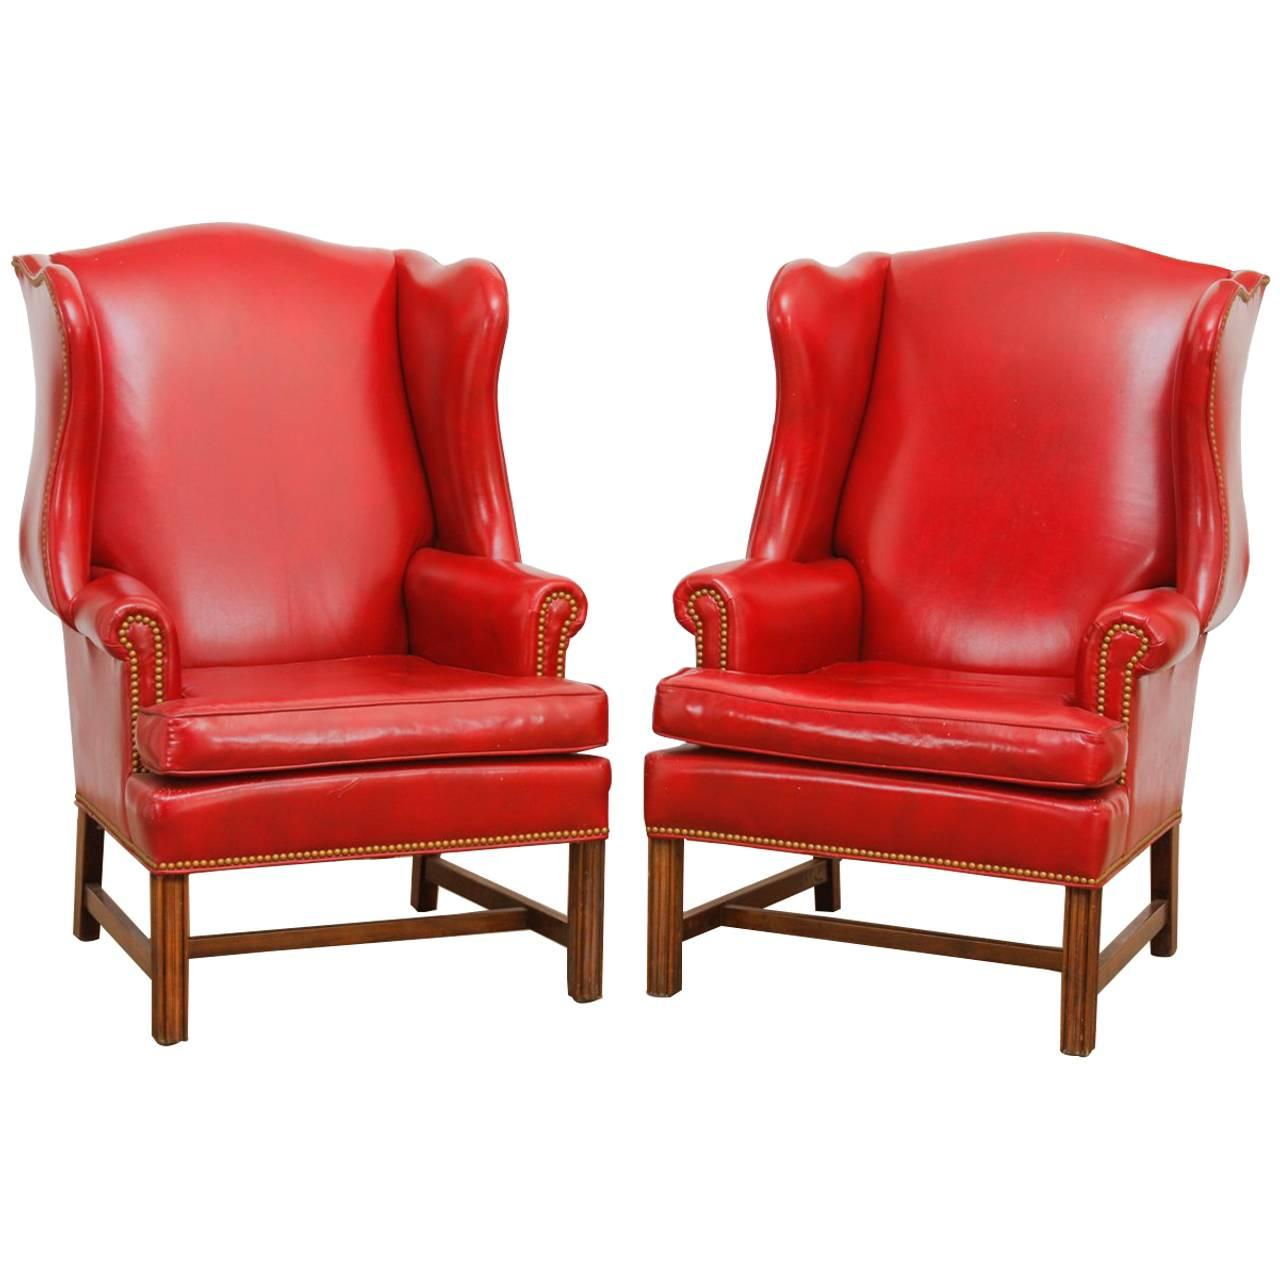 Gentil Pair Of Georgian Style Red Leather Wingback Library Chairs